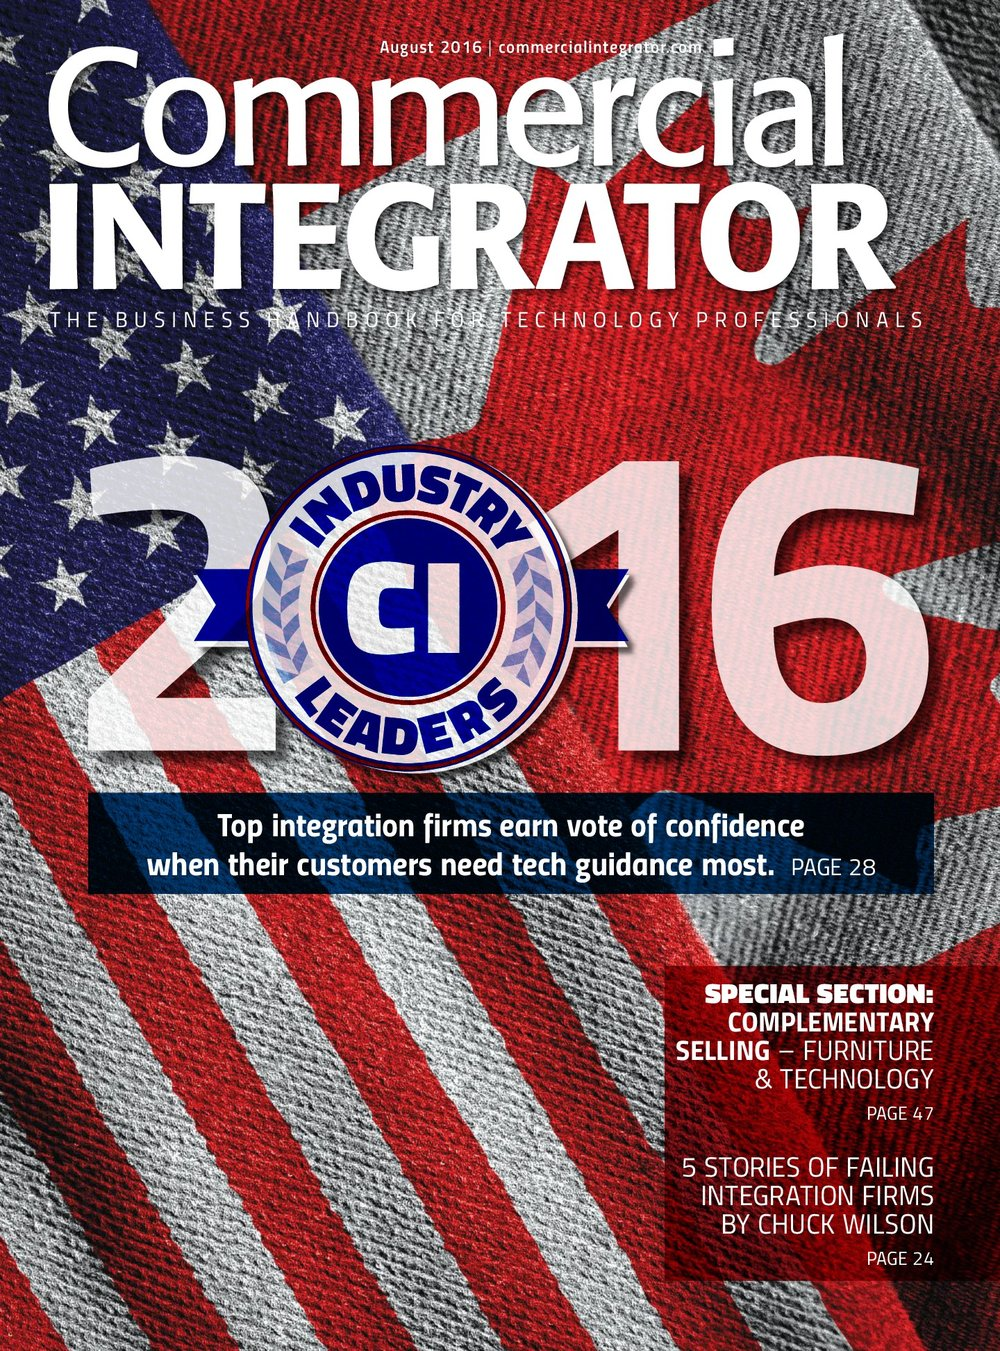 2016-Top-Integrator-Award-Commercial-Integrator